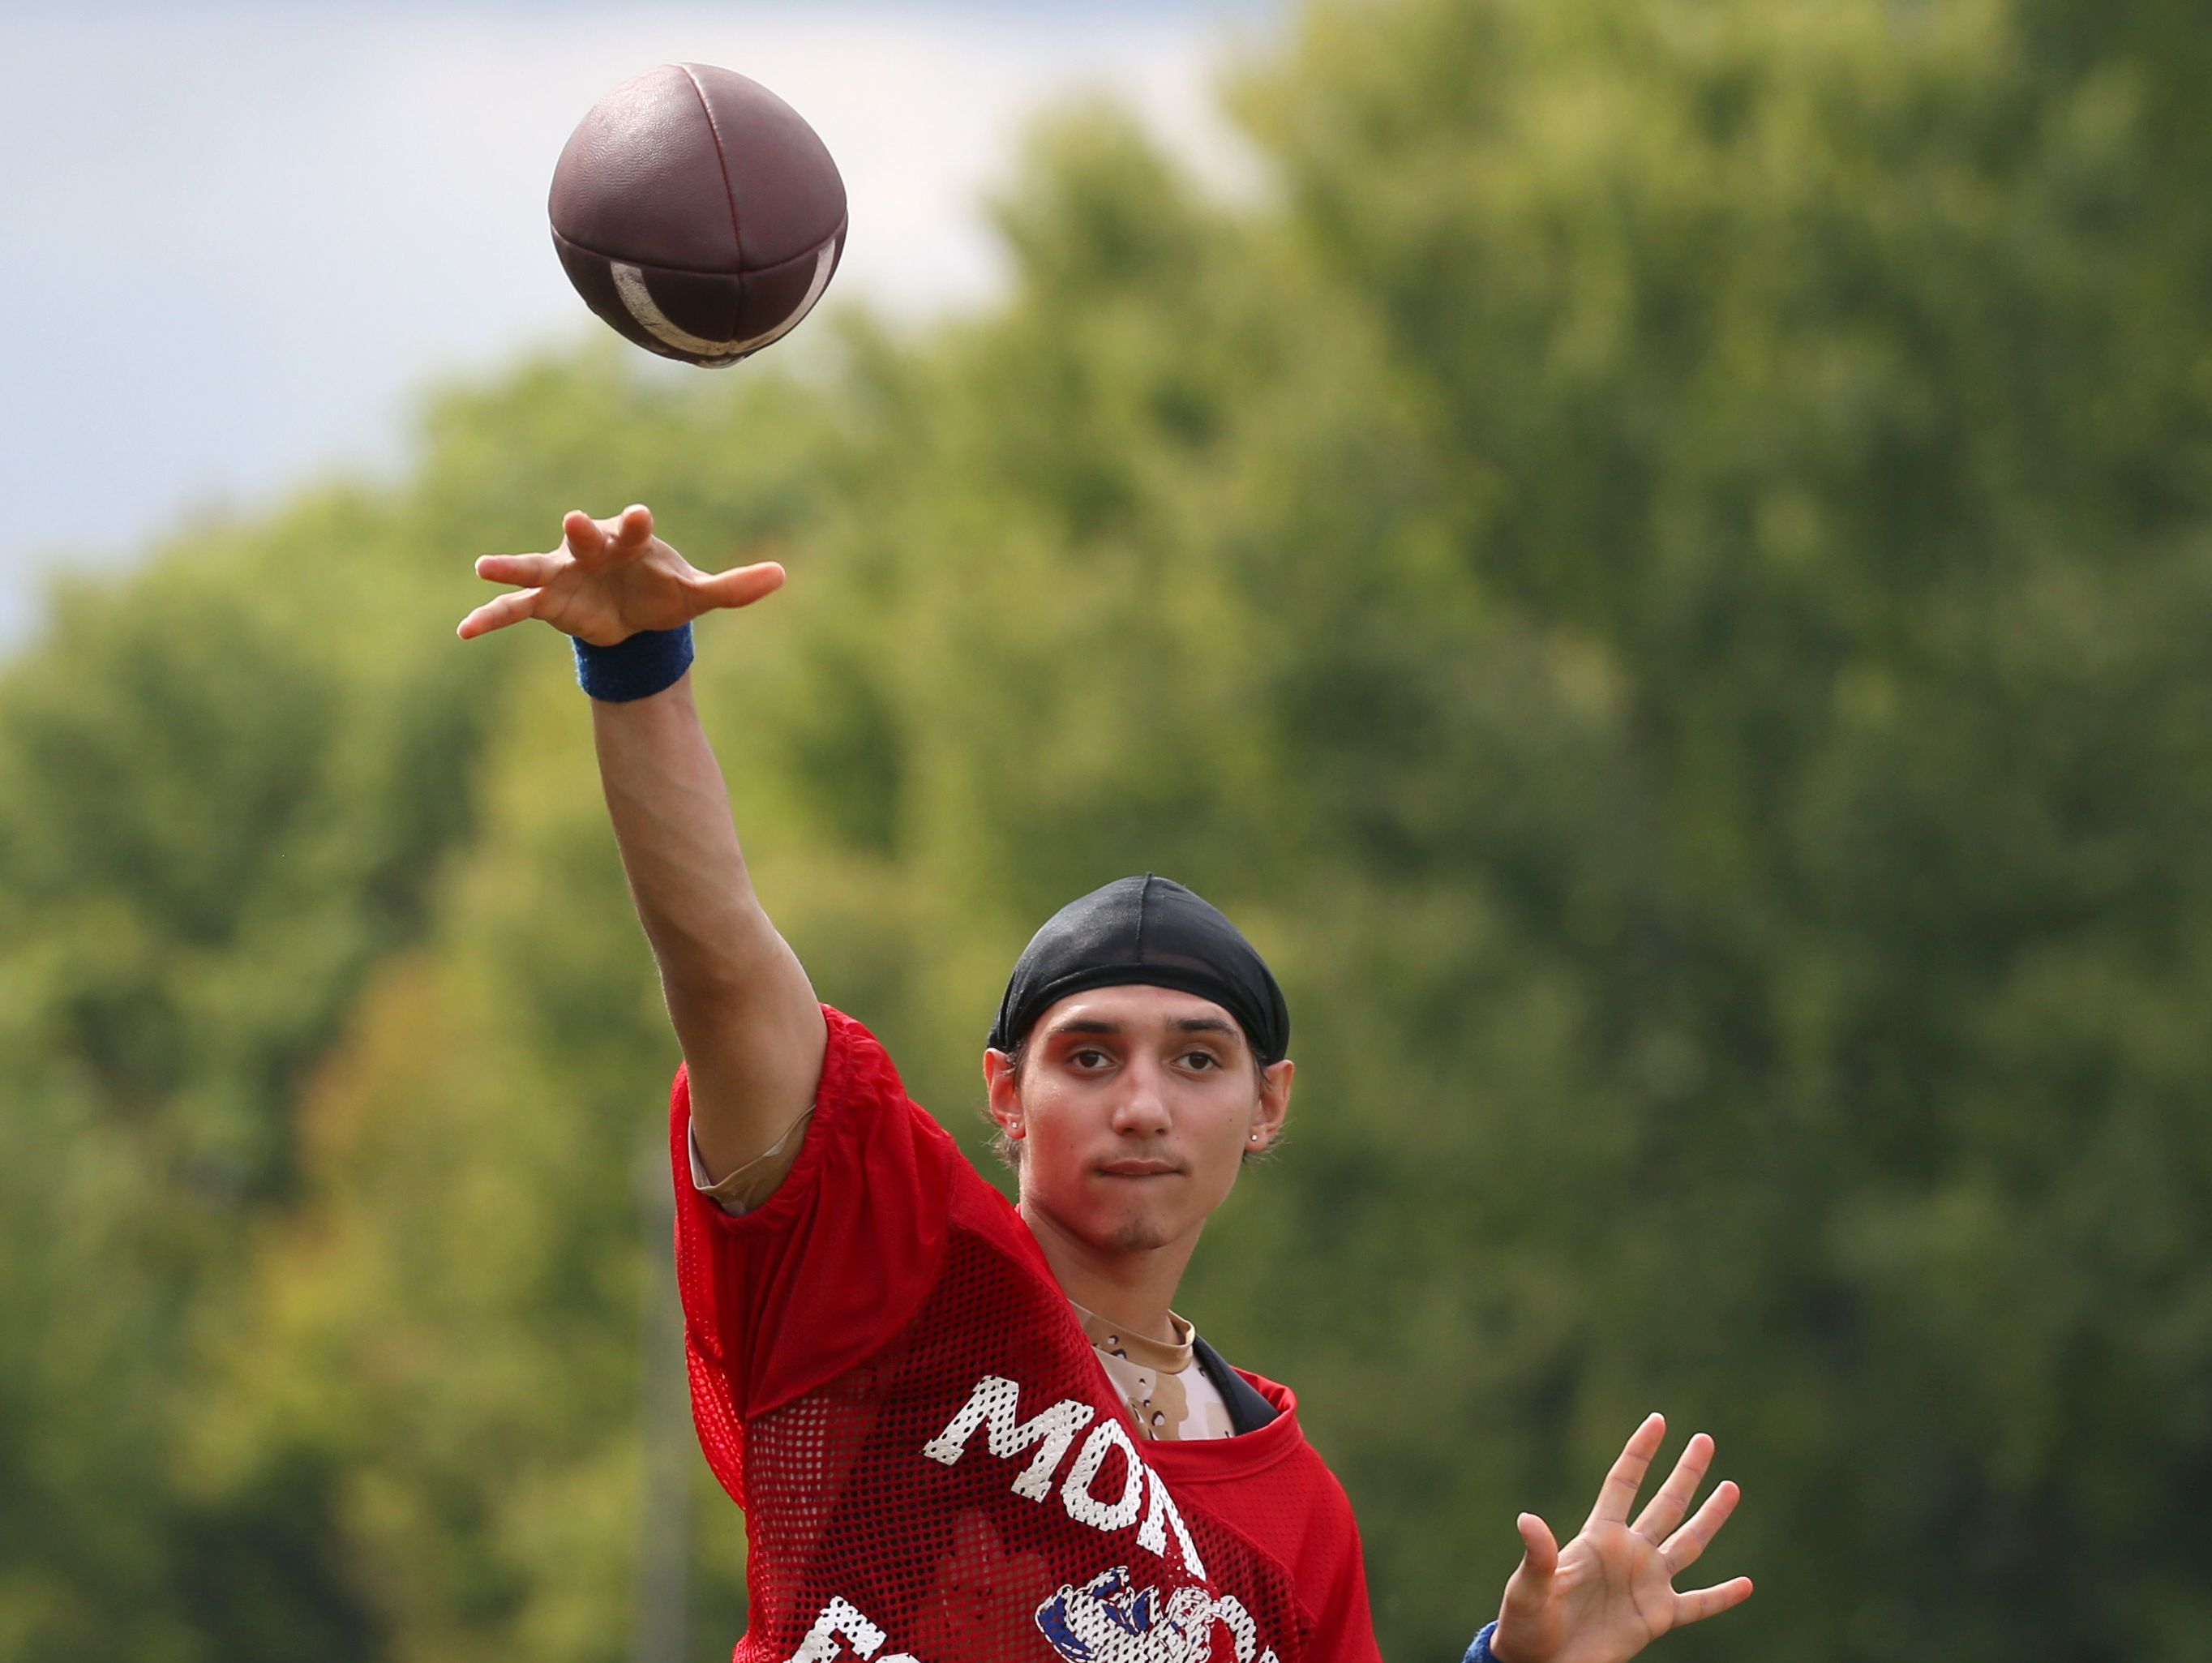 Monroe quarterback Anthony Colon airs it out during varsity football practice at All City High on Ridgeway Avenue in Rochester Tuesday, Aug. 16, 2016.